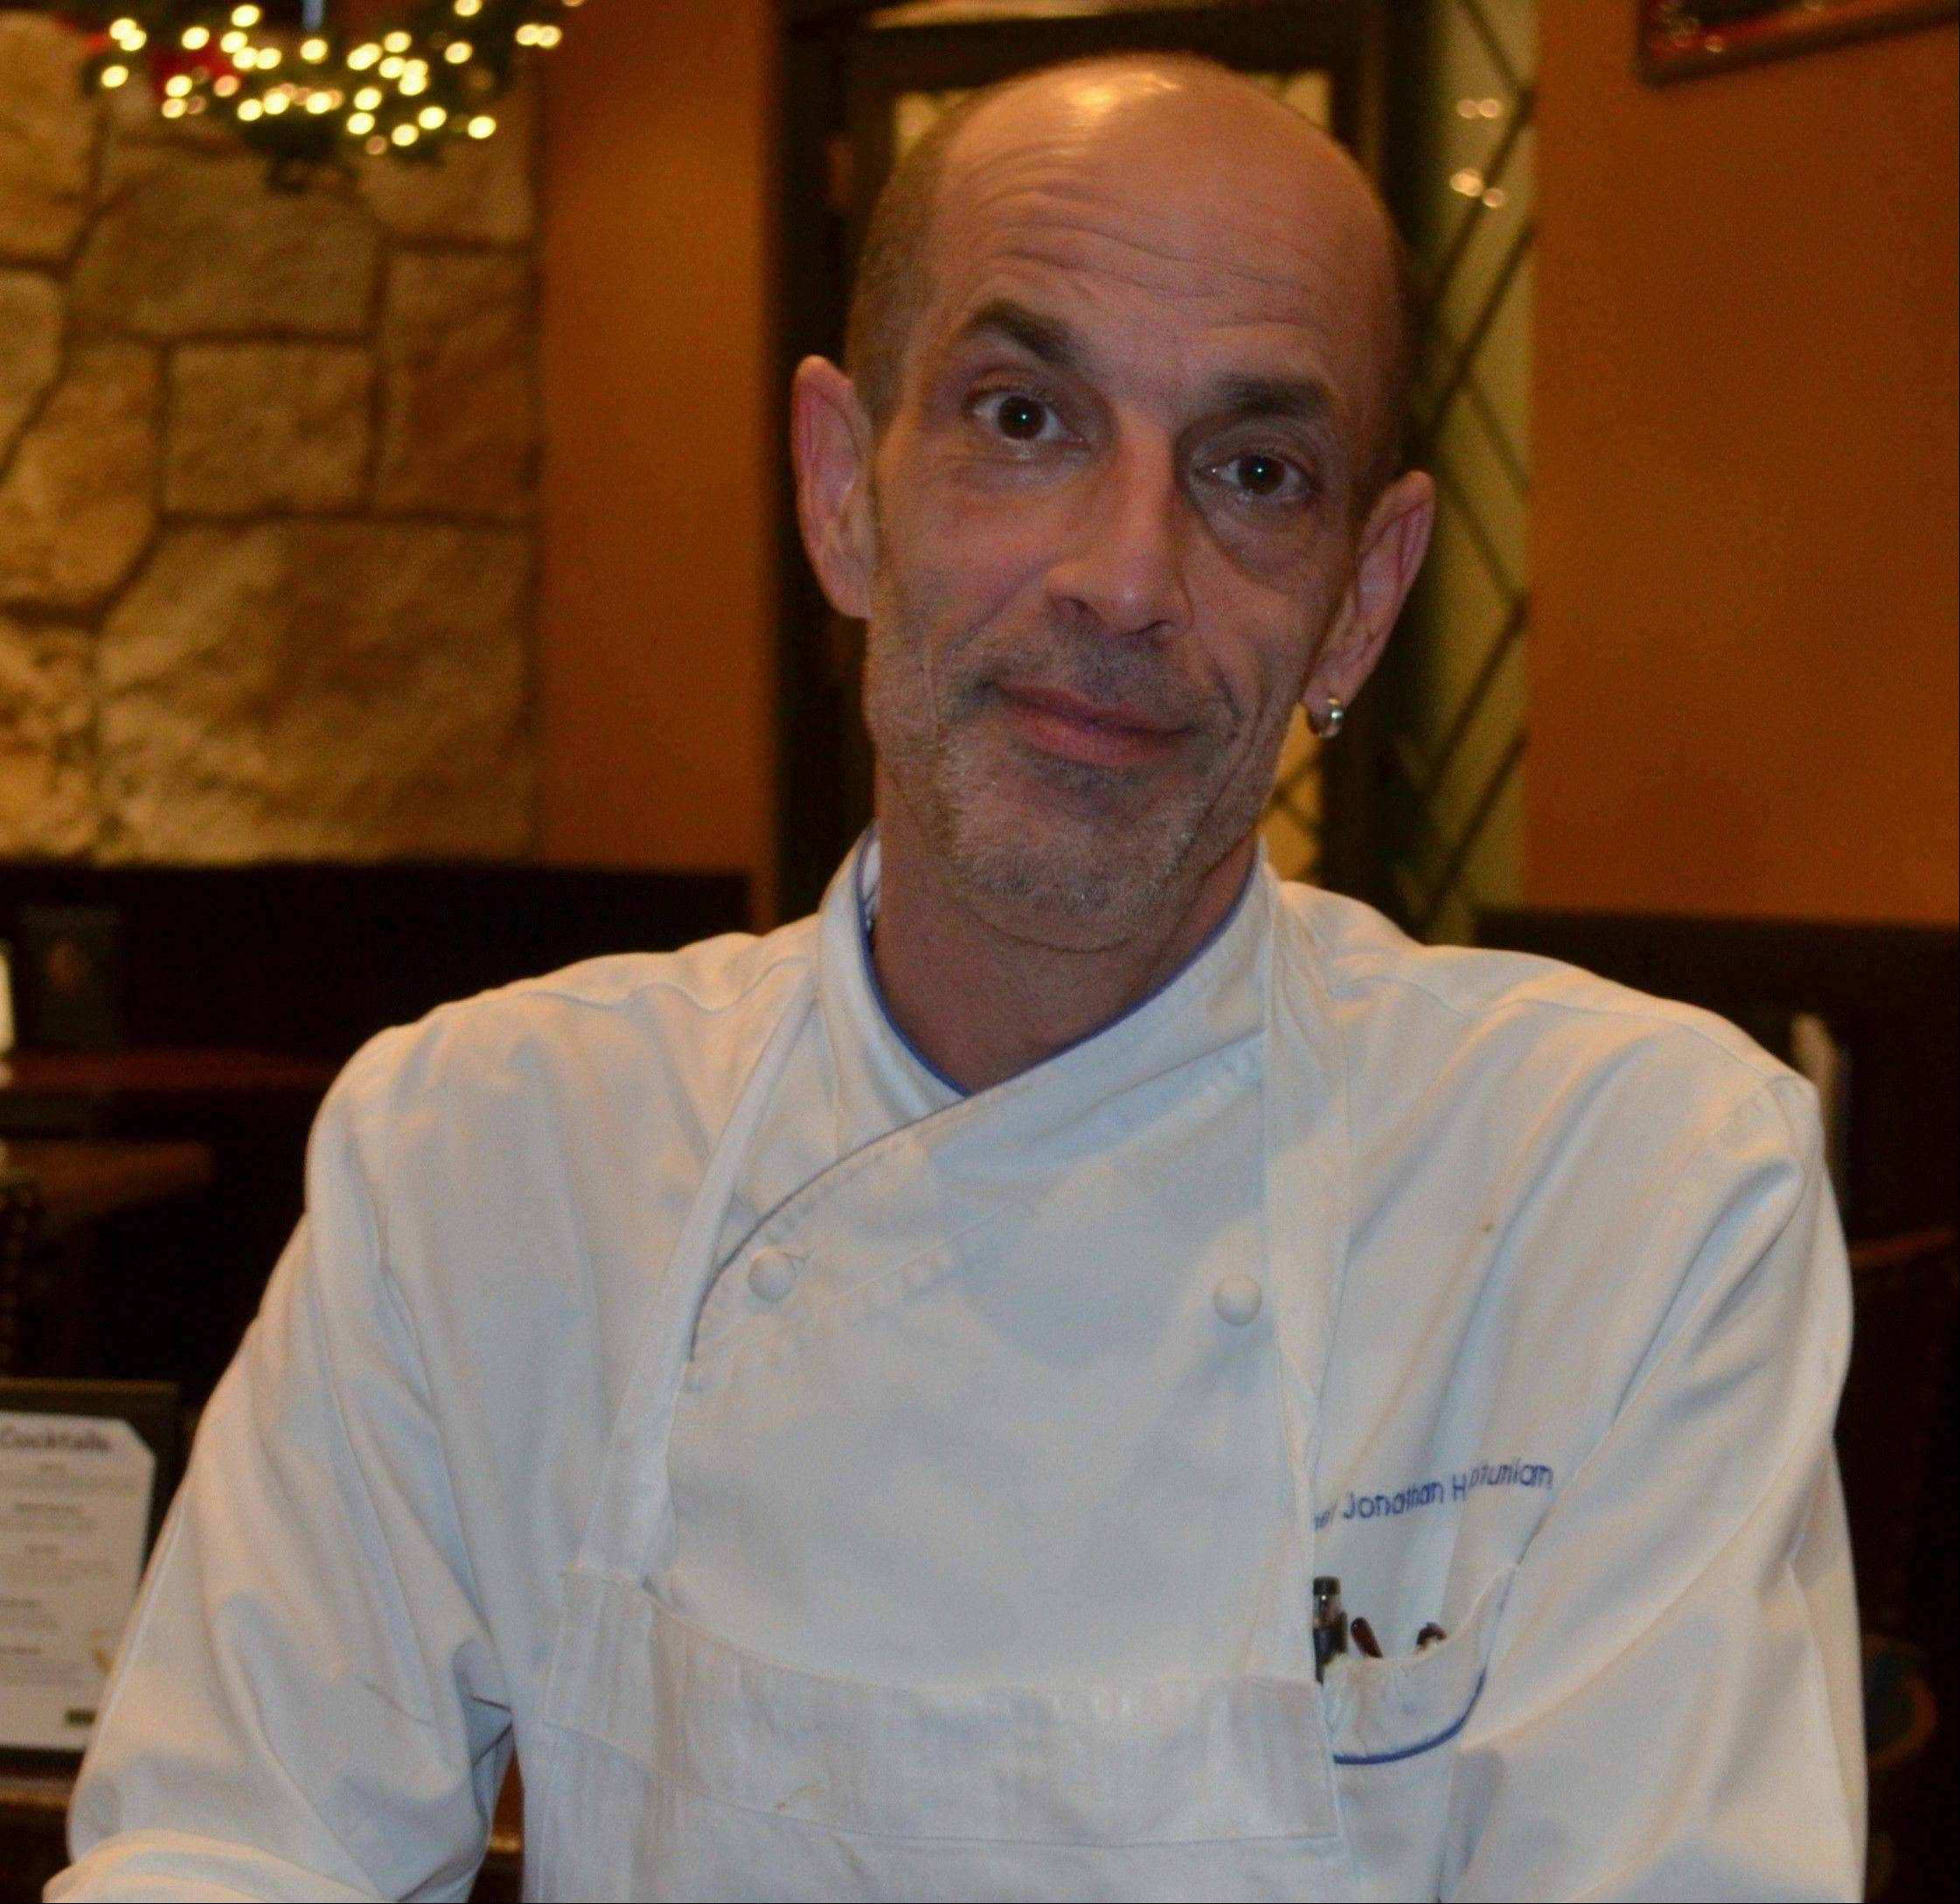 Carlucci welcomes a new chef, Jonathan Harootunian.